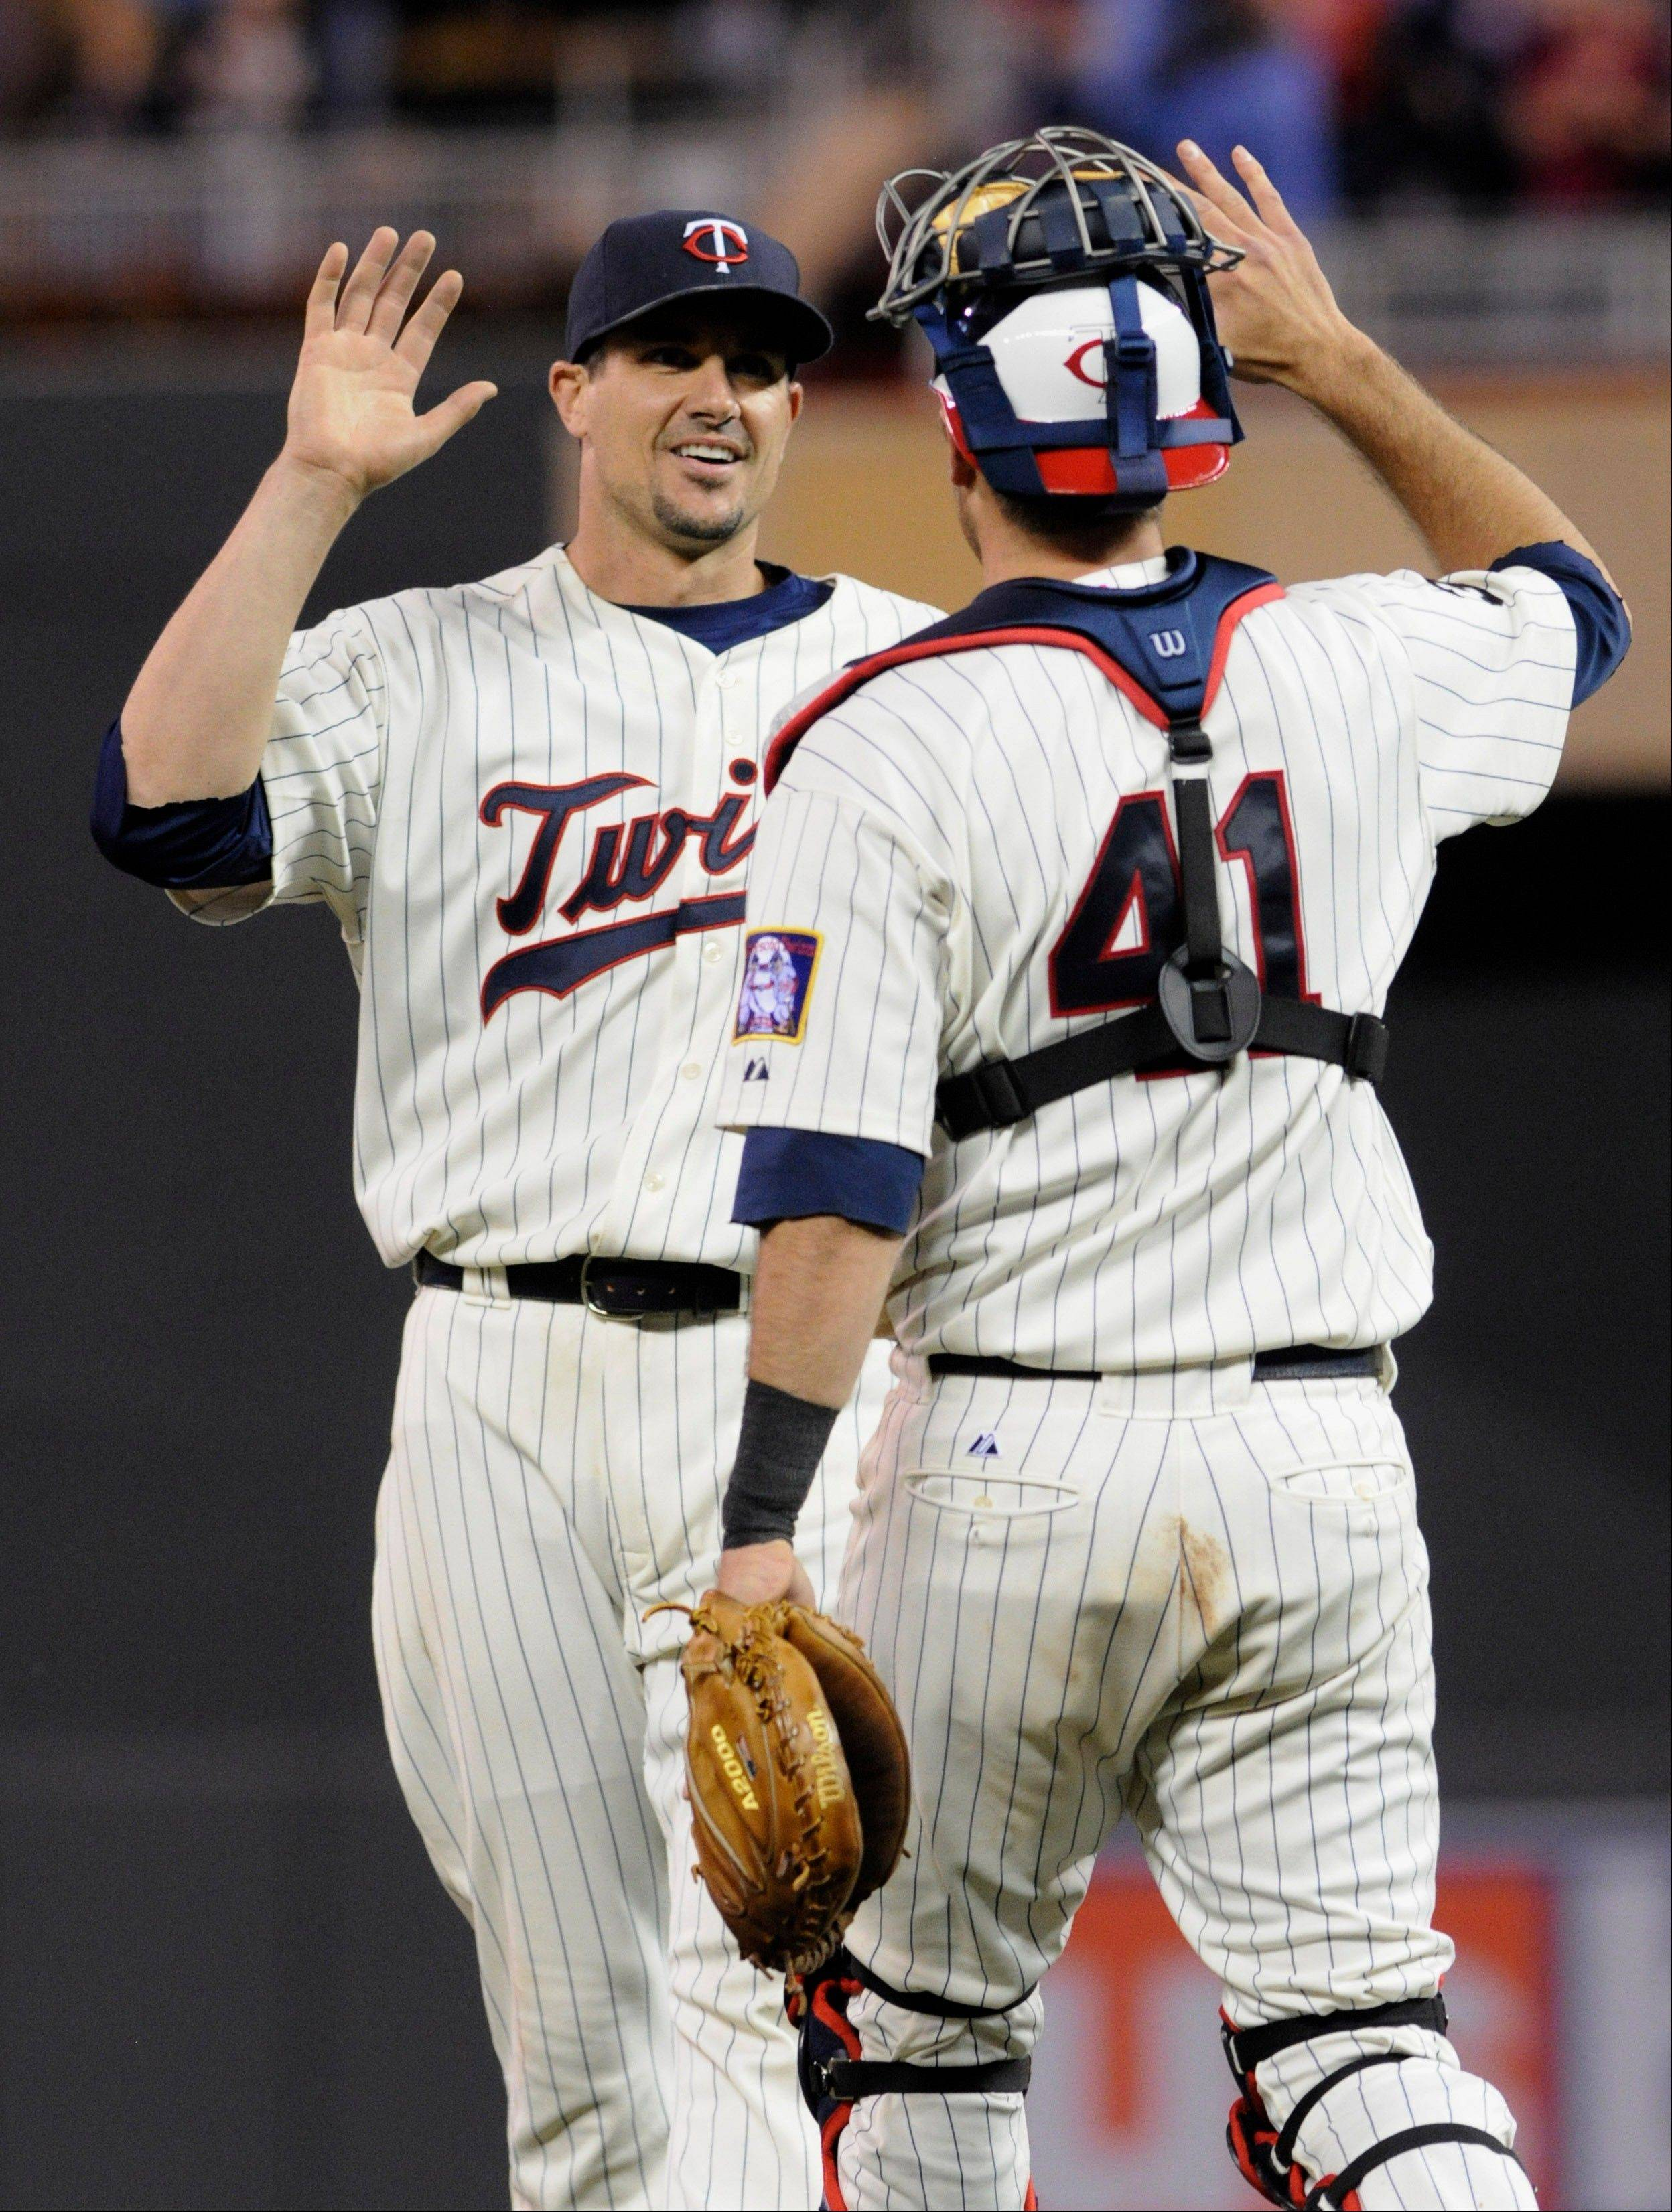 If uniform says Twins, Sox struggle